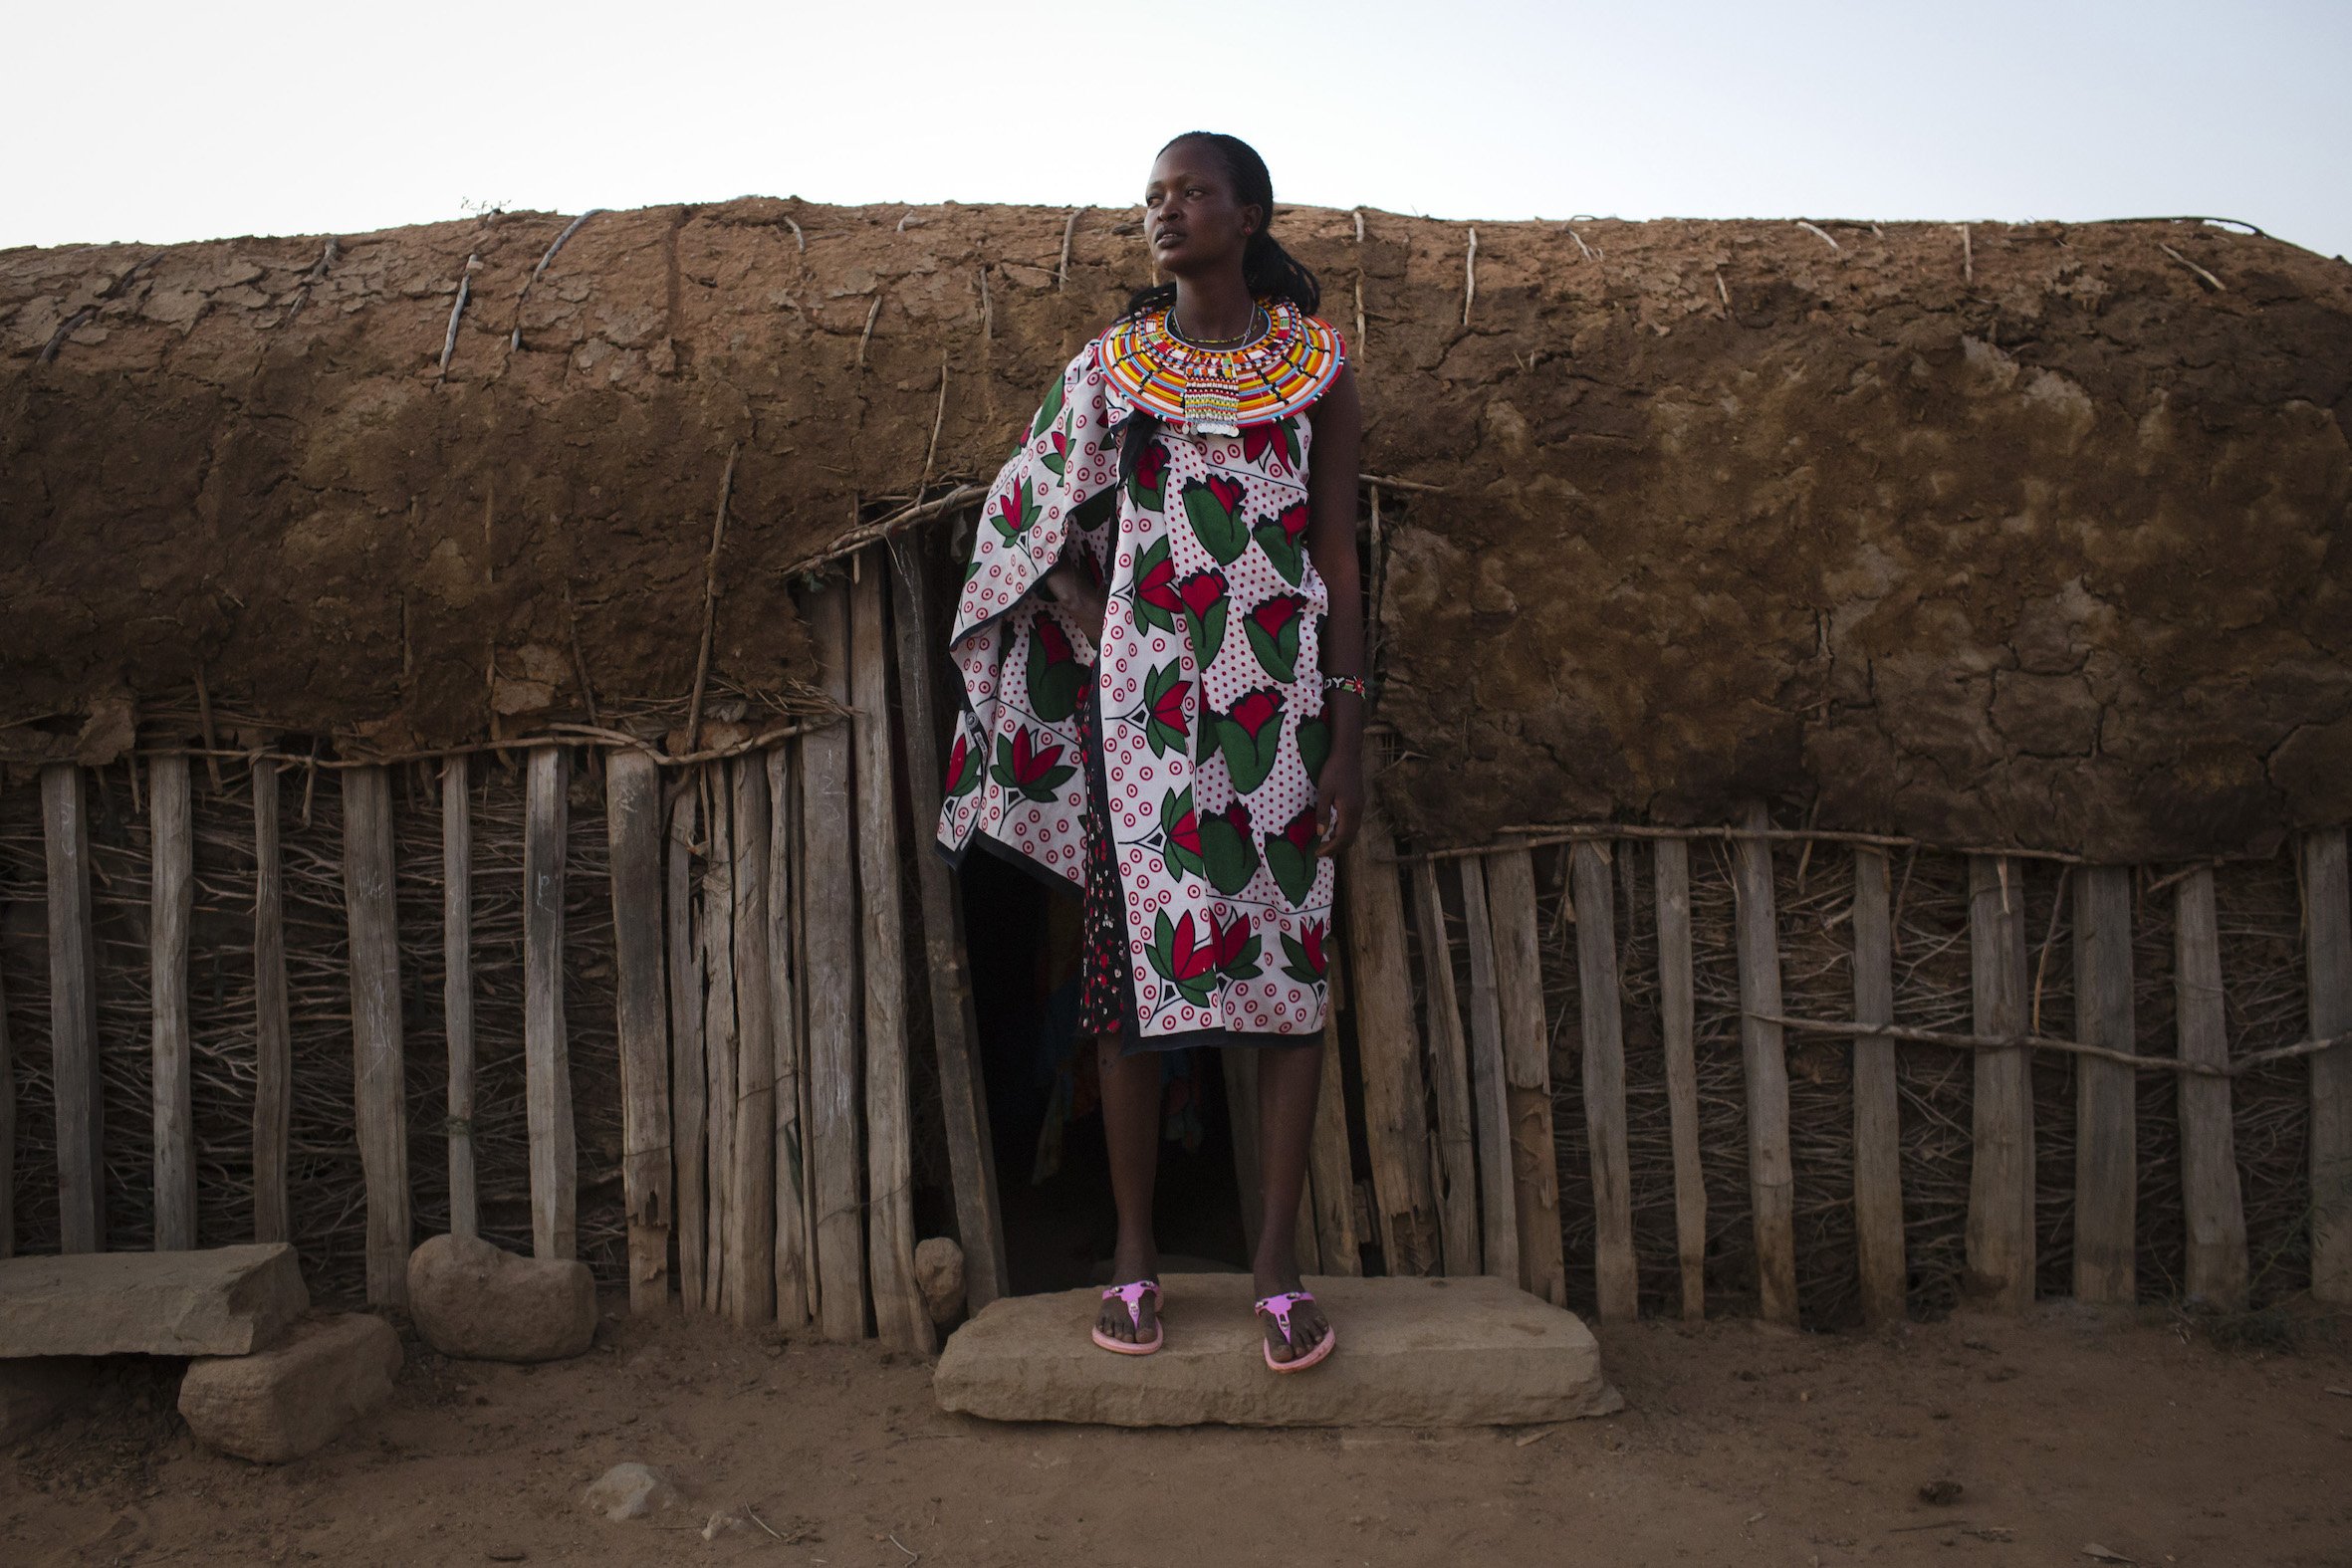 Judi Lerumbe, 21, stands by her home in the village of Umoja in Samburu, Kenya on February 19, 2015.